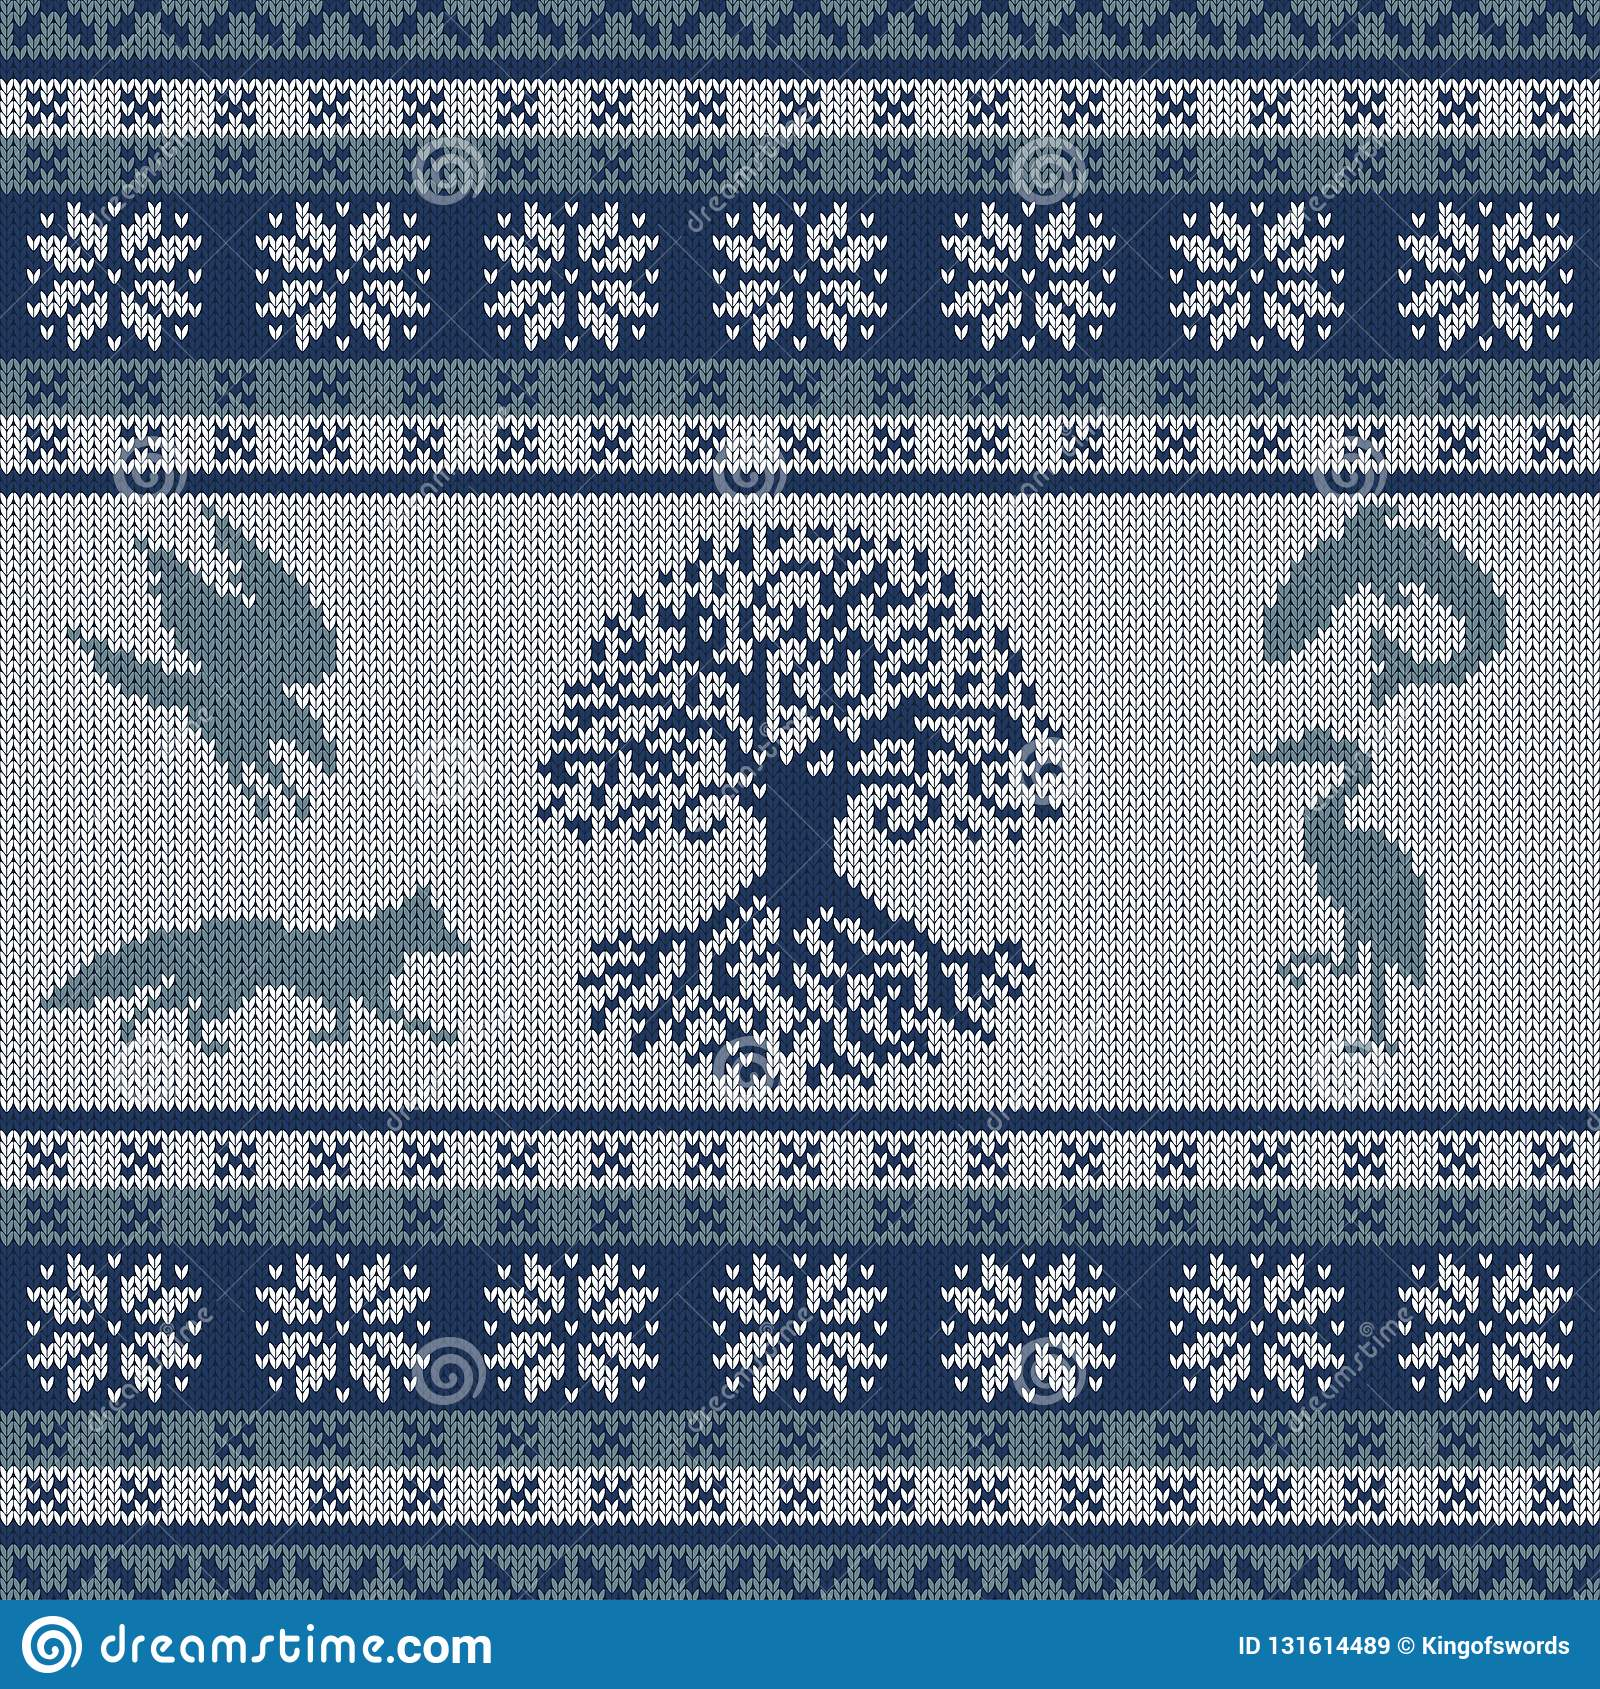 Knit Seamless Woolen Ornament With Celtic Totem Animals And The Tree